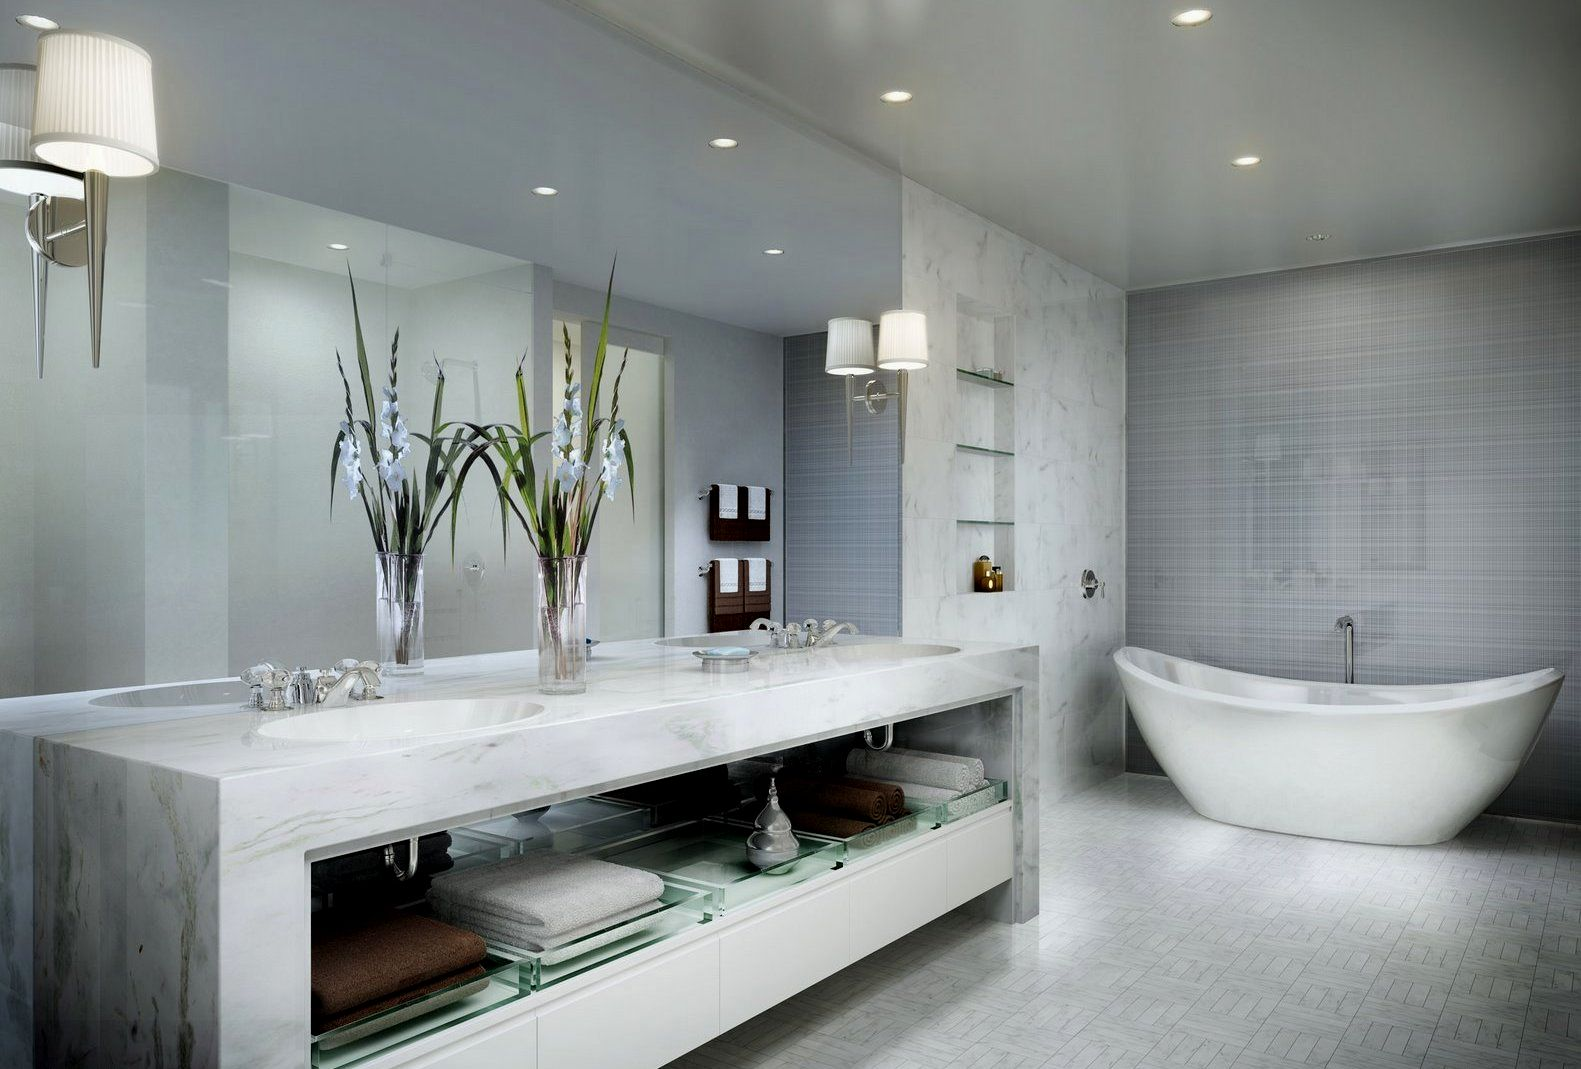 excellent bathroom designs for small spaces plan-Excellent Bathroom Designs for Small Spaces Concept